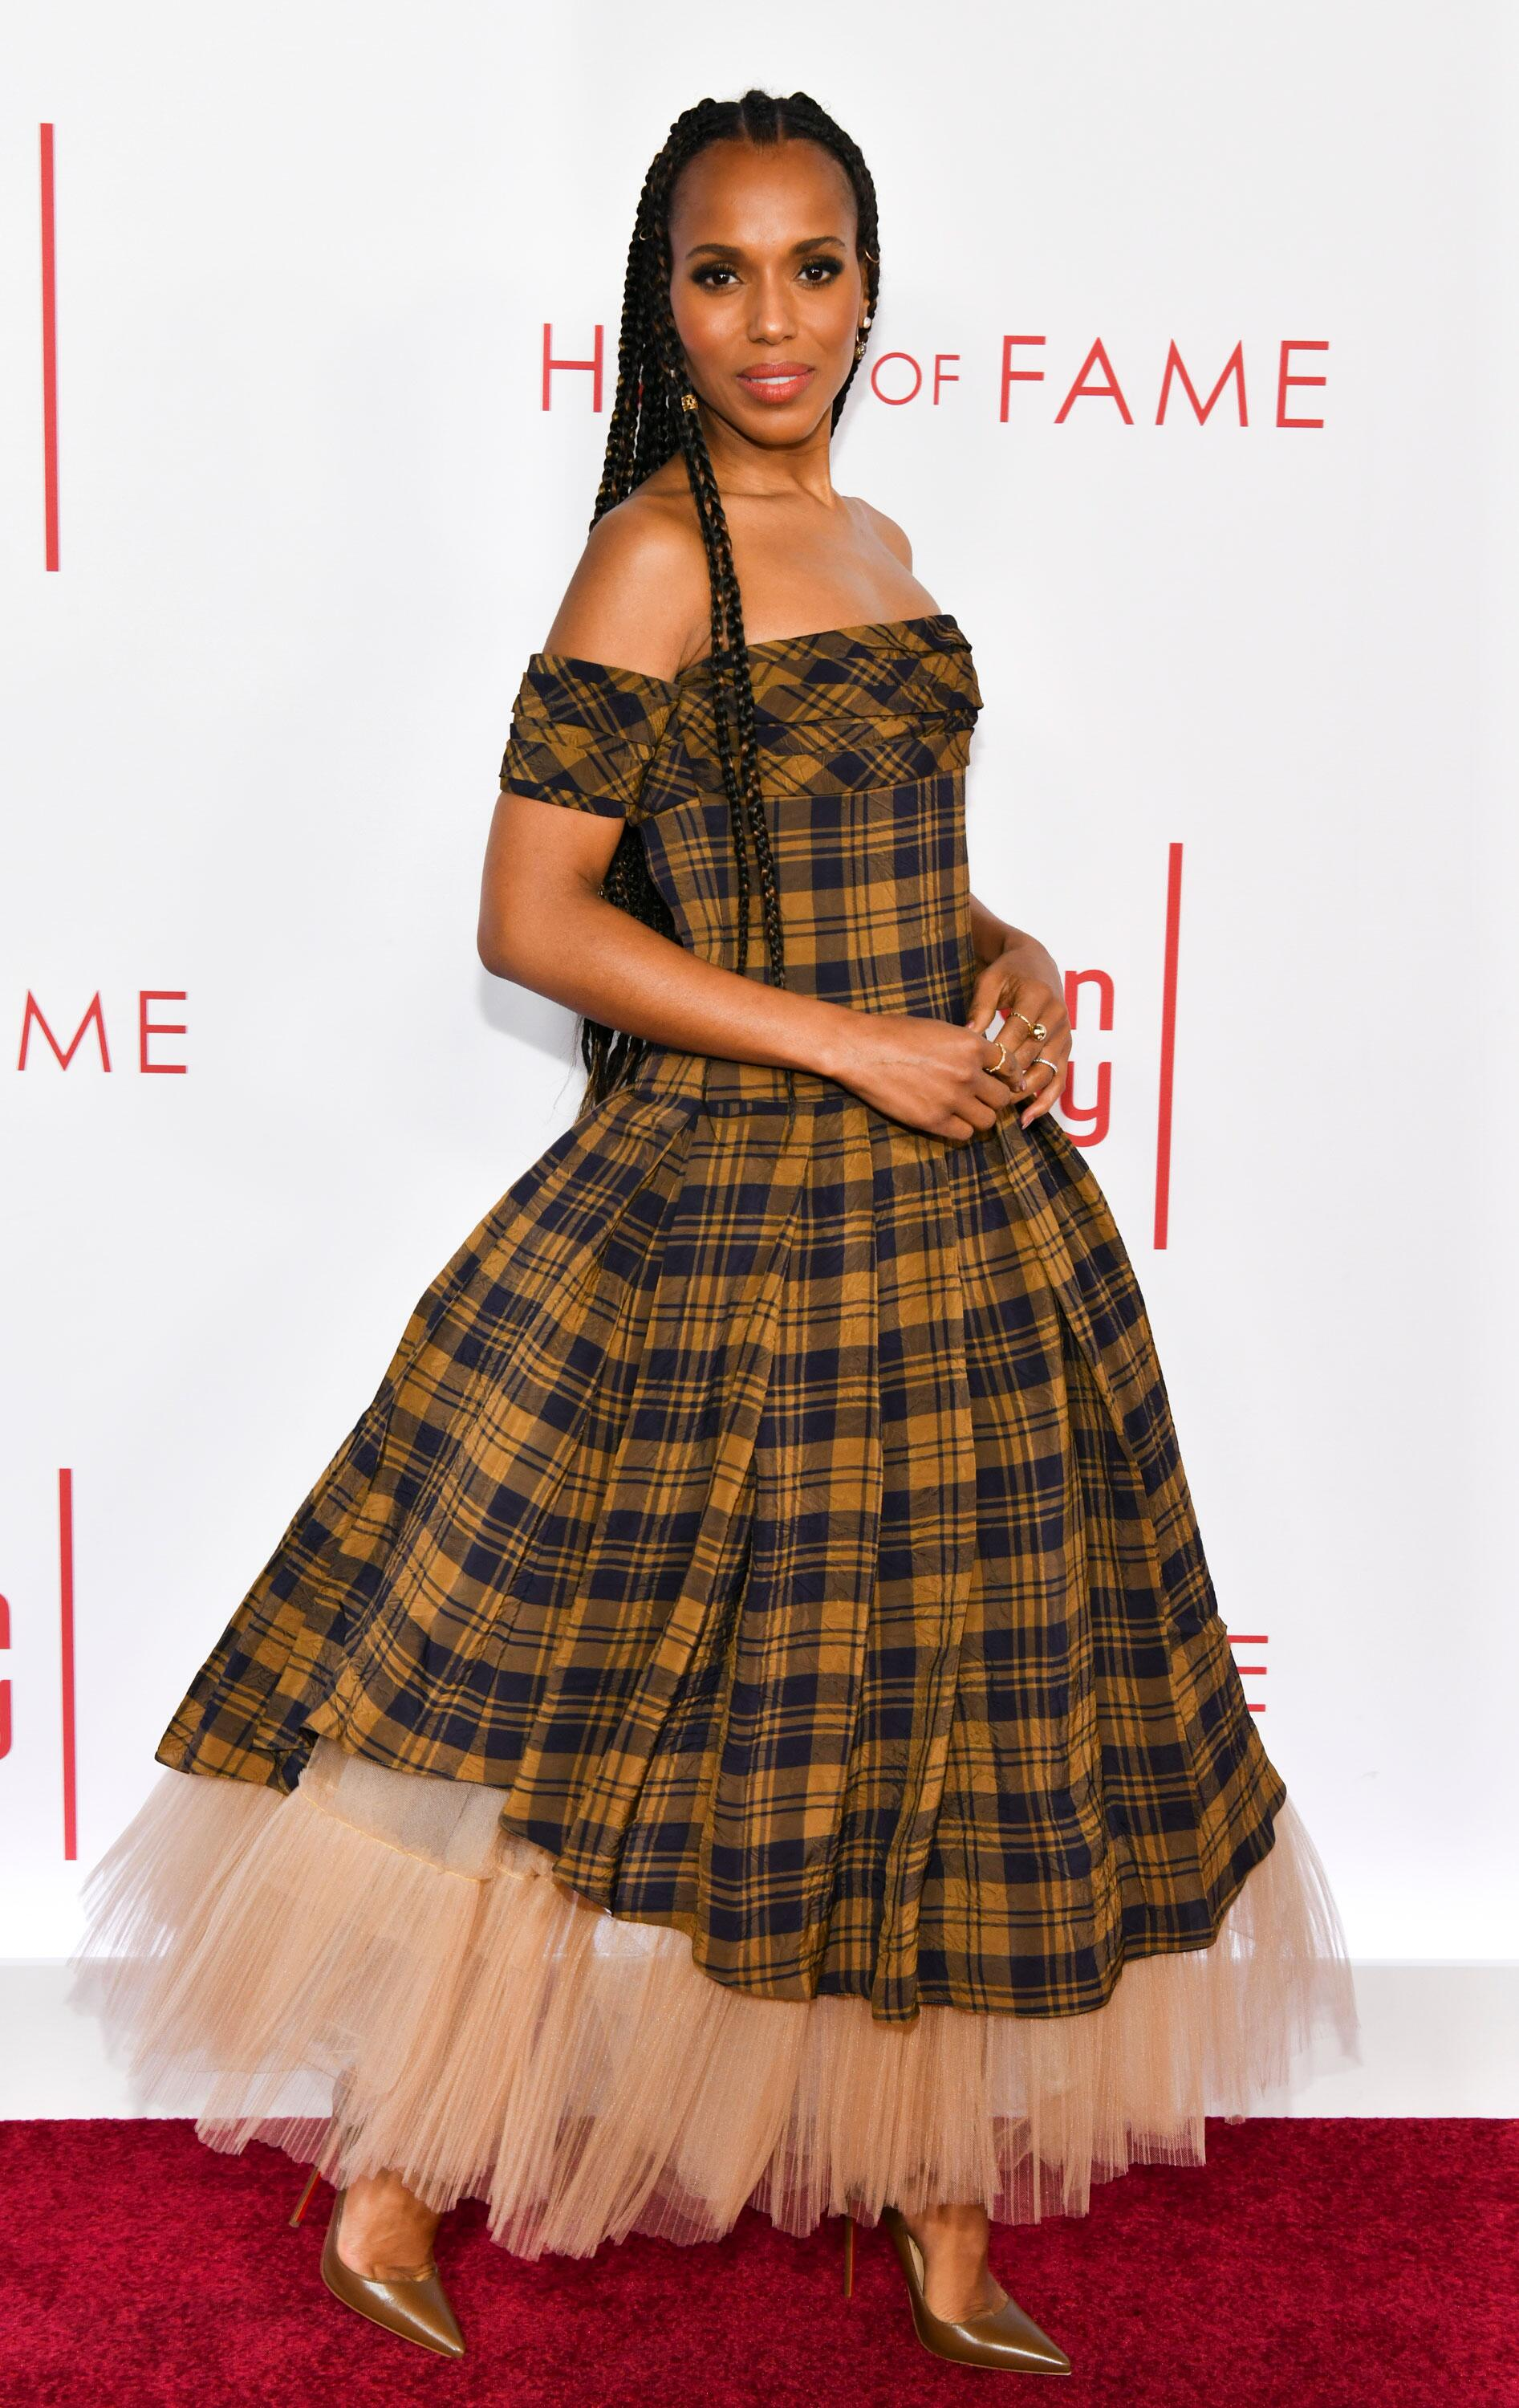 Kerry-Washington-GettyImages-1202643753-insets.jpg